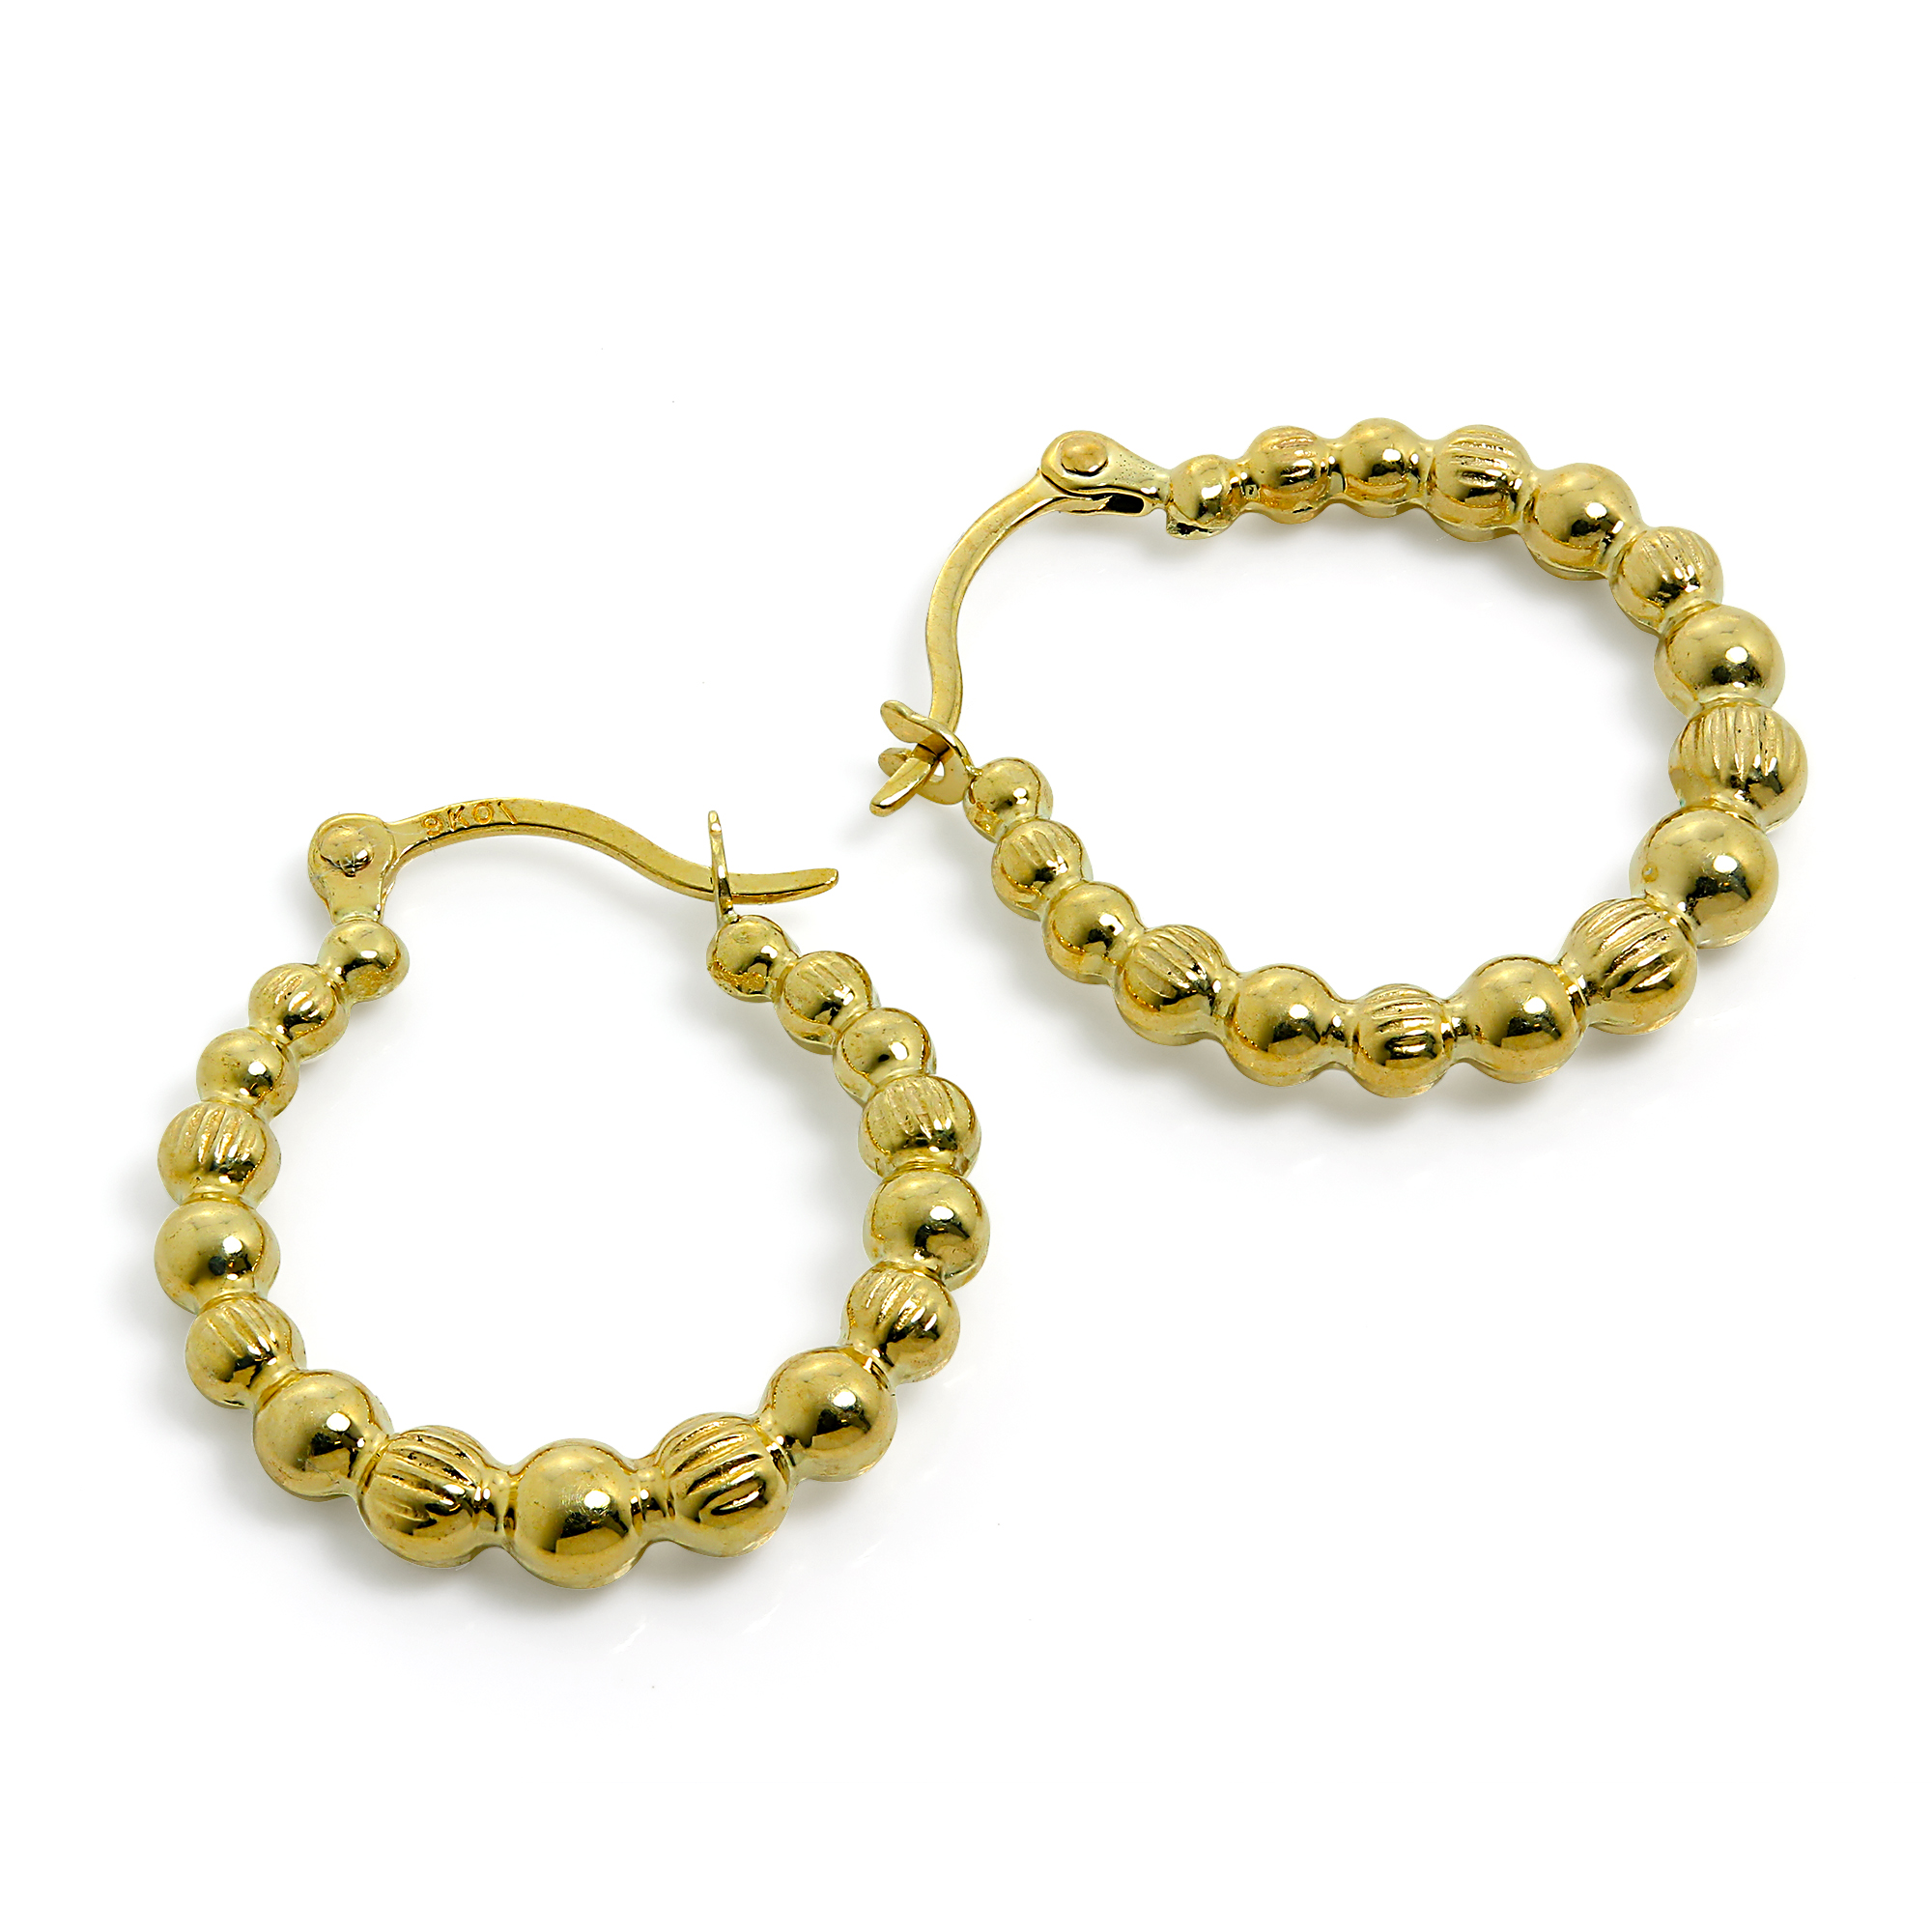 Details About 9ct Gold Beaded Creole 12mm Hoop Earrings 375 Creoles Bead Hoops